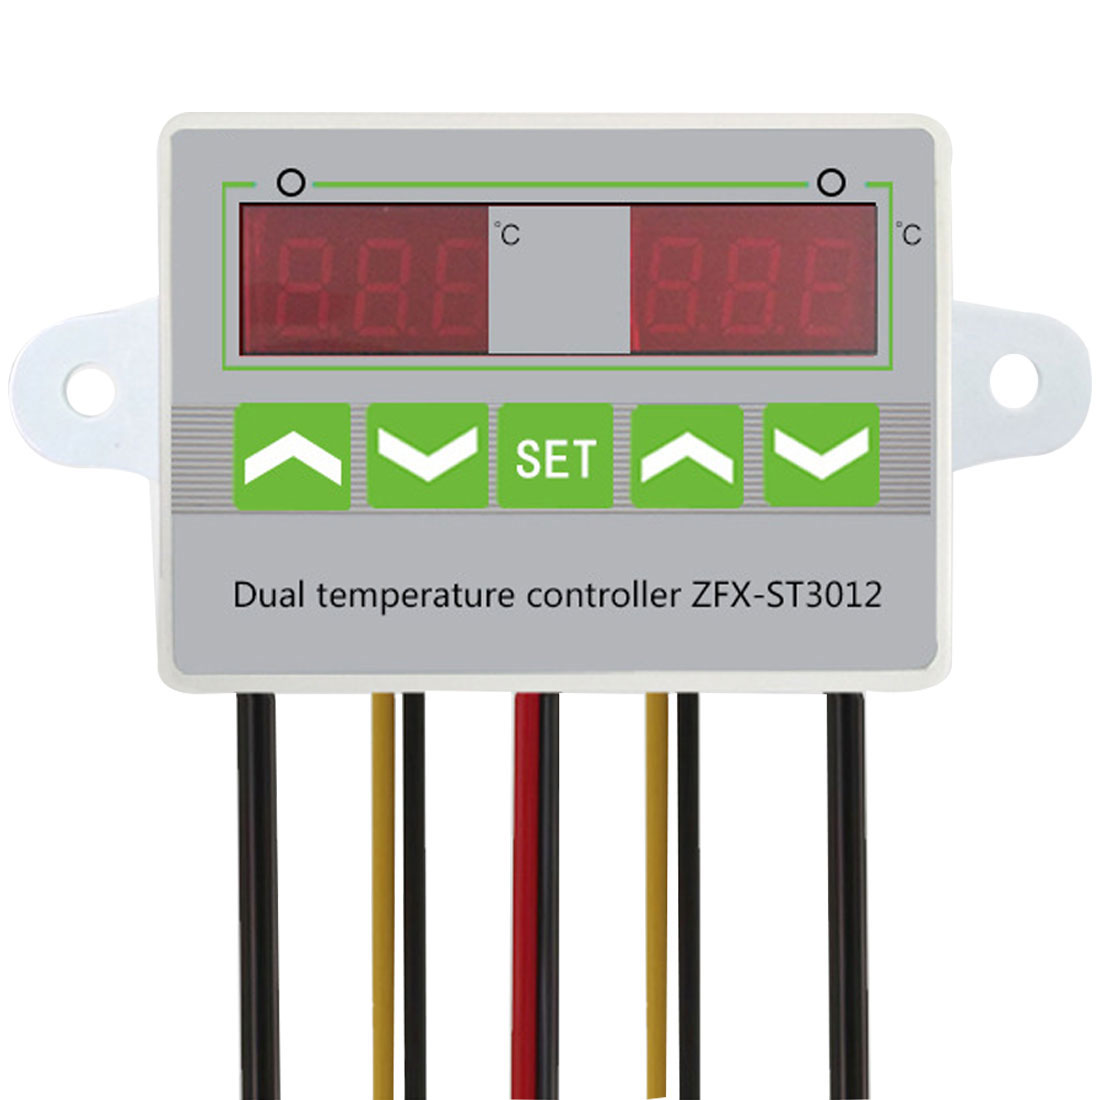 AC 12V 24V 220V Microcomputer Digital Dual Thermometer Temperature Controller Thermostat Incubator Control Dual Probe смартфон ginzzu s5140 белый